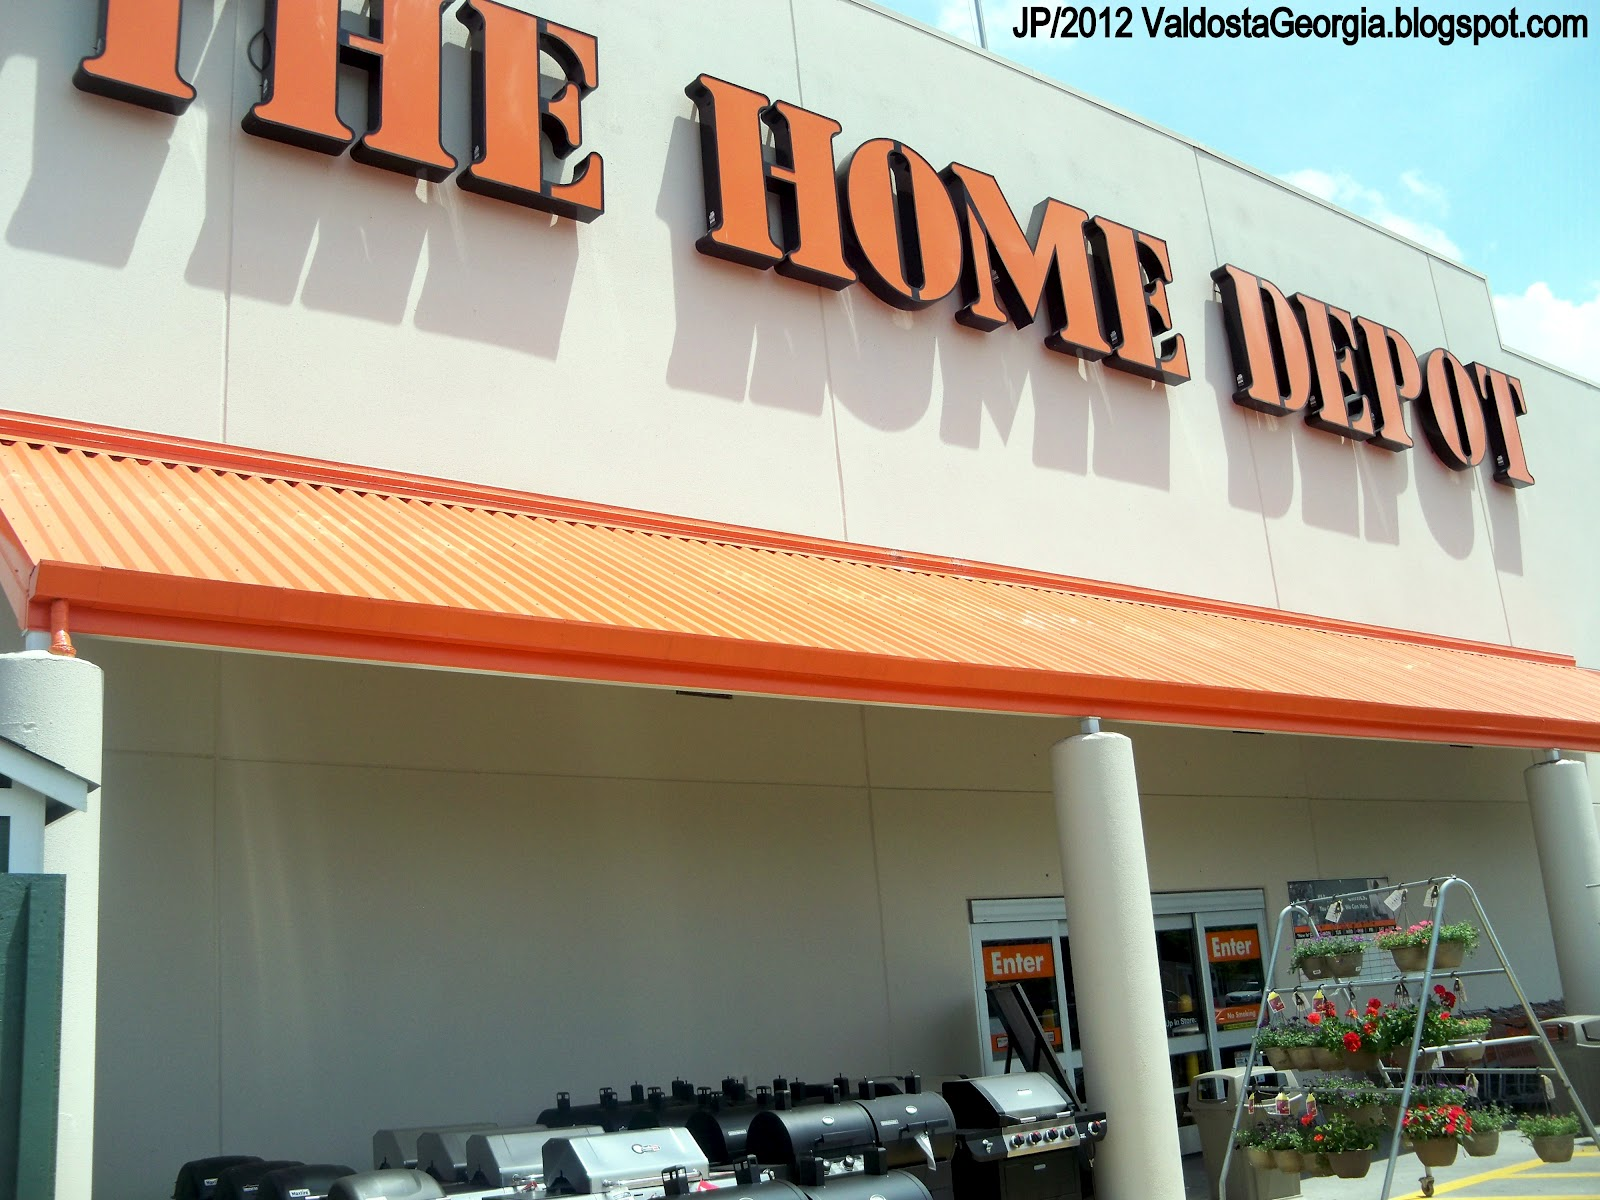 Bank Home Depot Valdosta Georgia Lowndes College Restaurant Attorney Dr Hospital